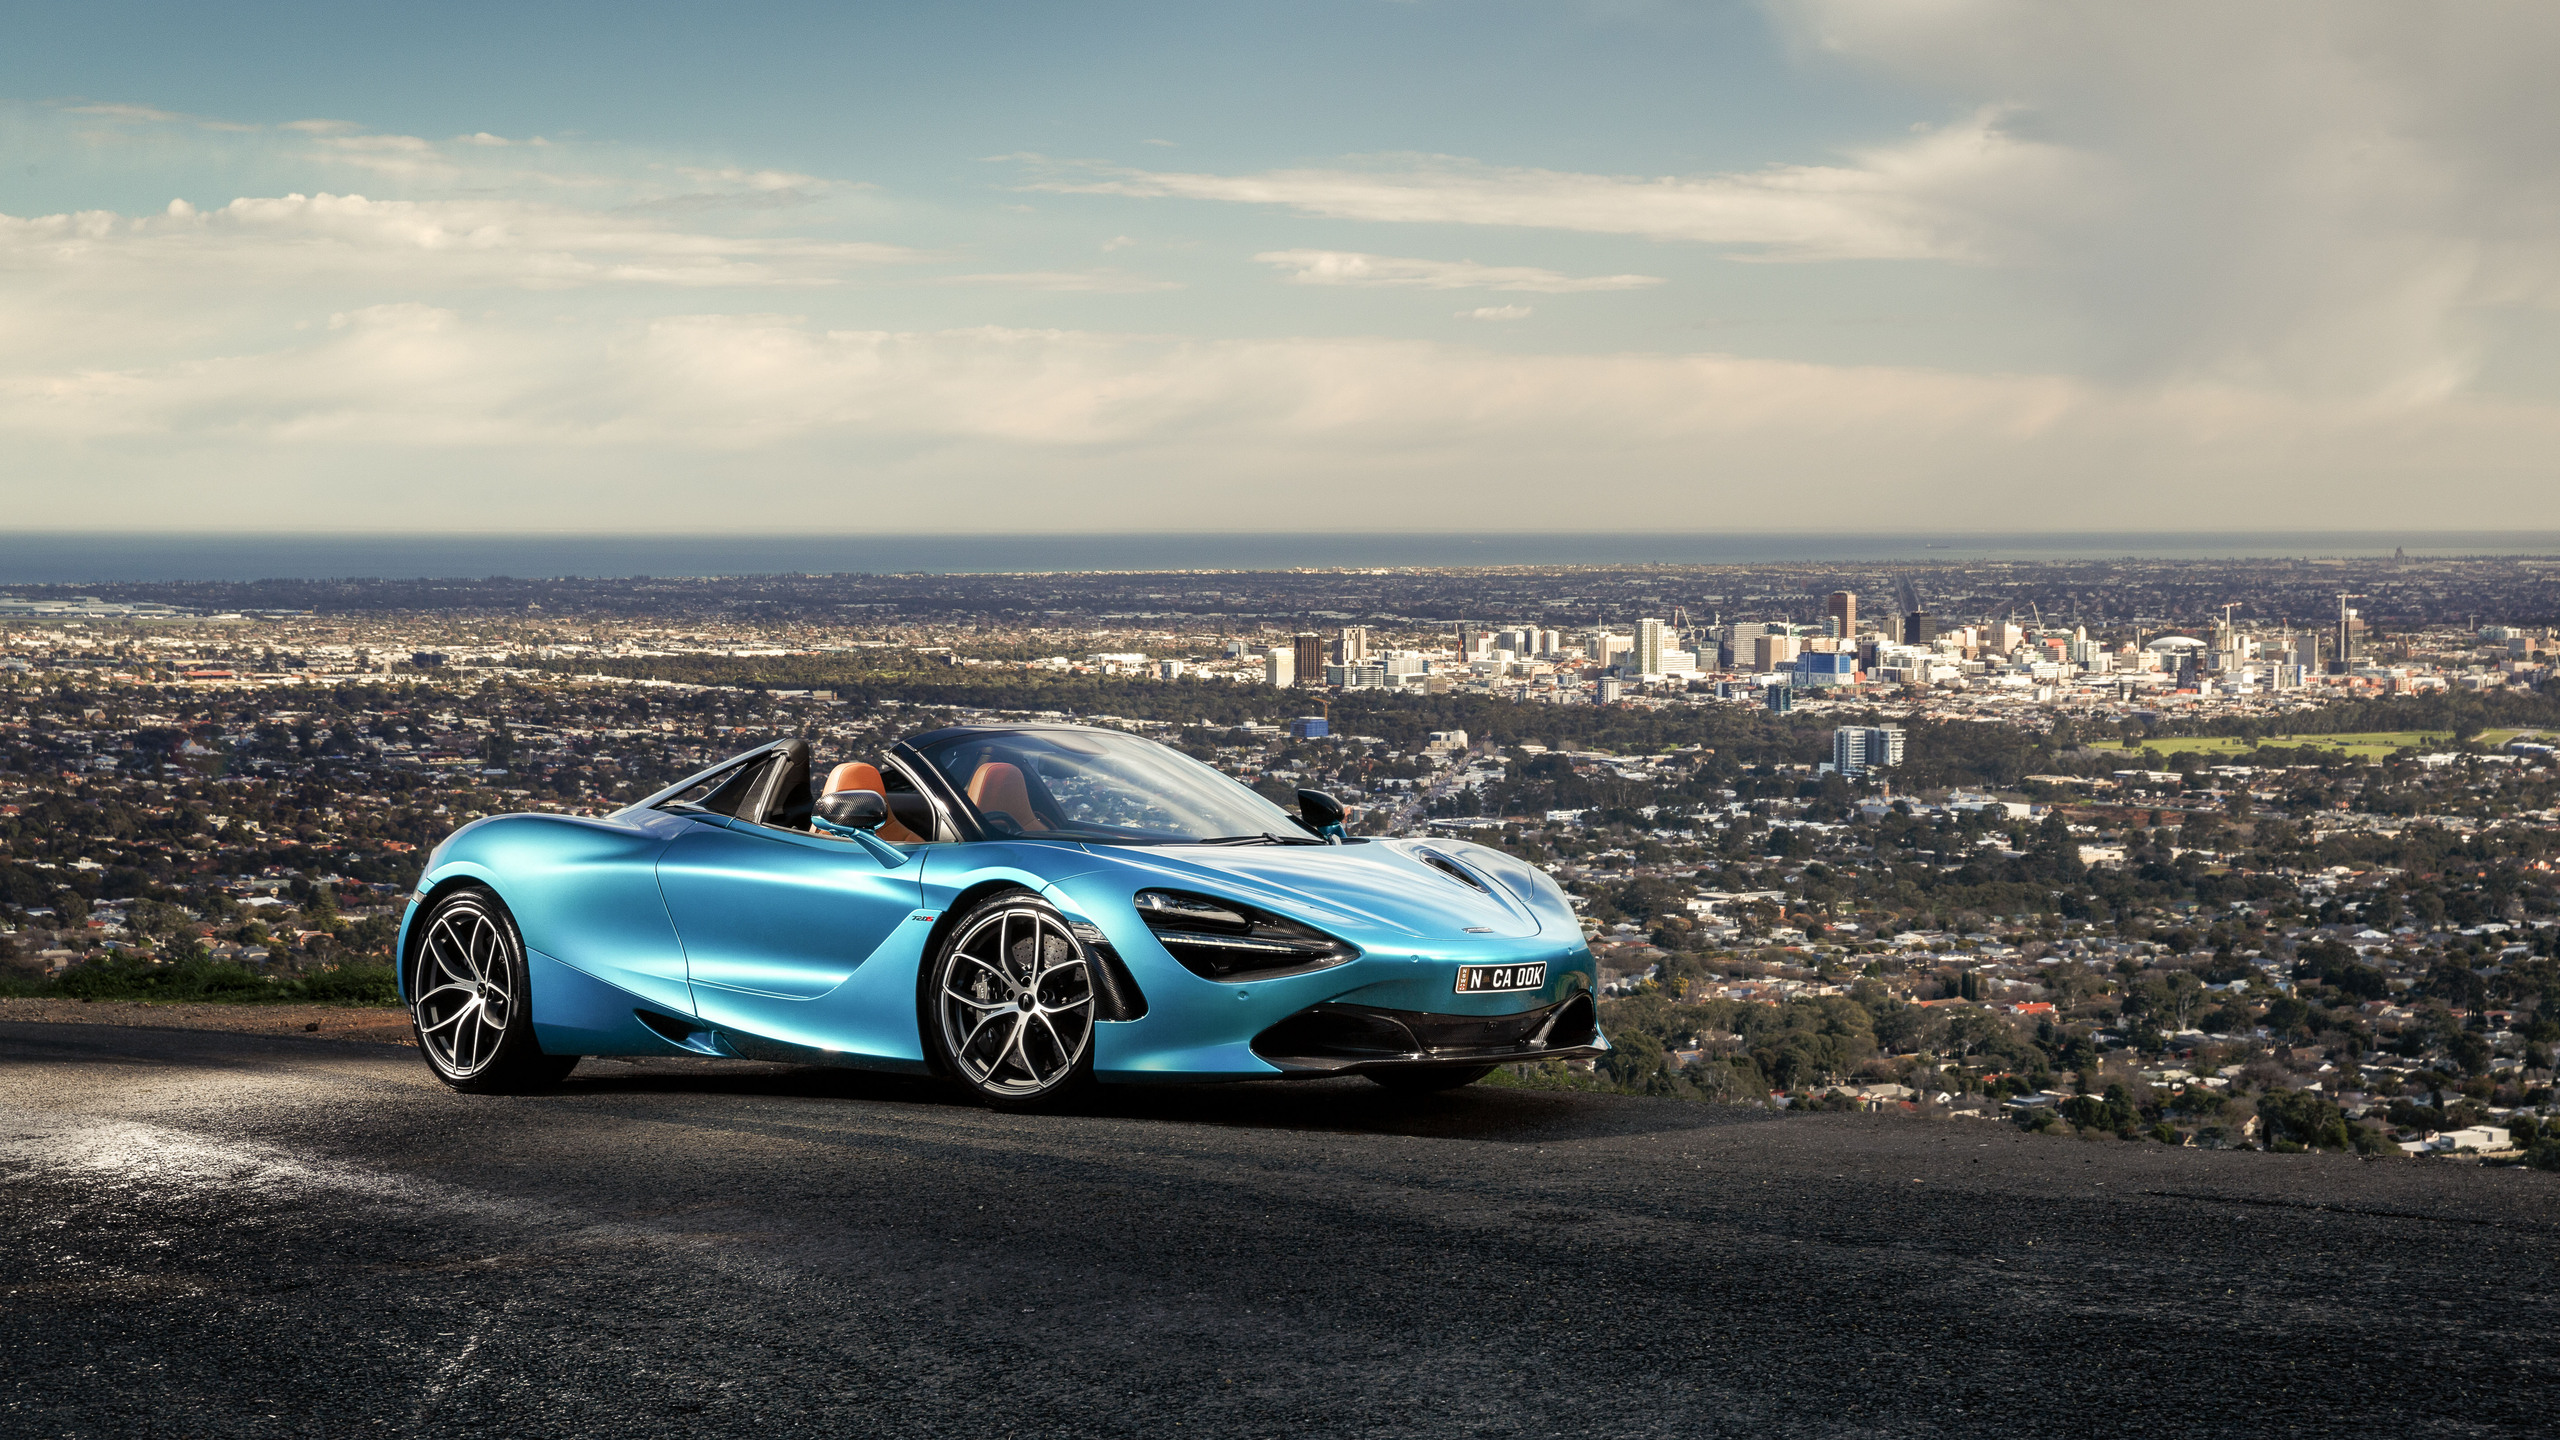 2560x1440 Mclaren 720s Spider 2019 5k Front 1440p Resolution Hd 4k Wallpapers Images Backgrounds Photos And Pictures